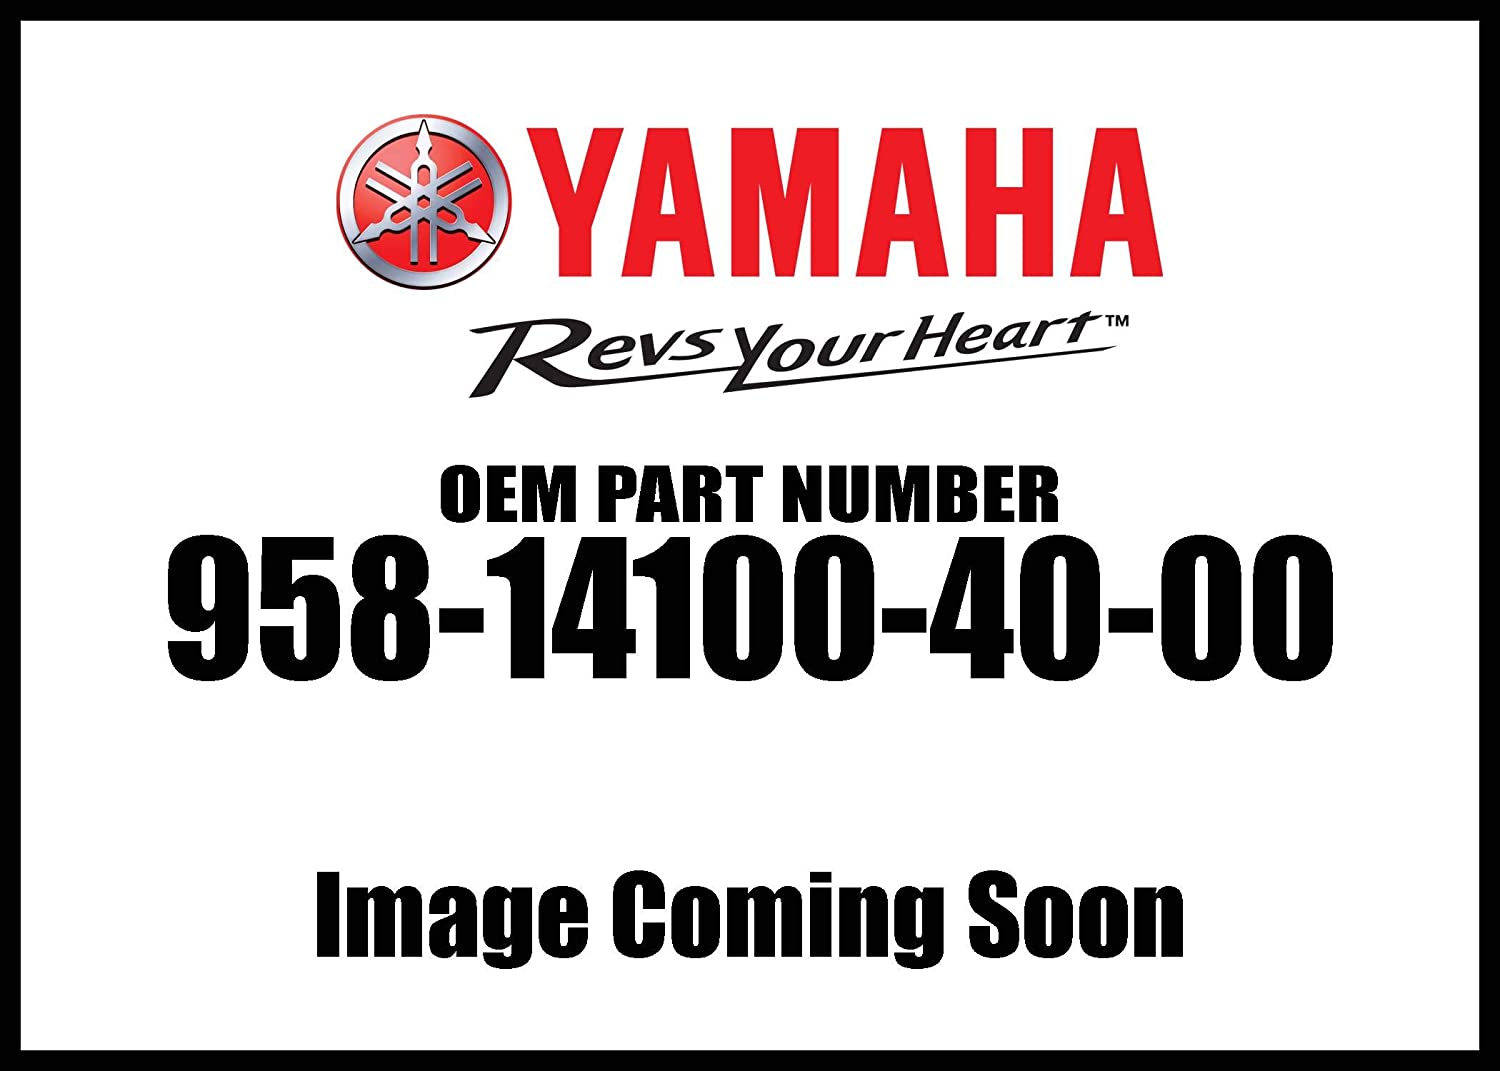 Yamaha 95814-10040-00 Bolt Flange; 958141004000 Made by Yamaha